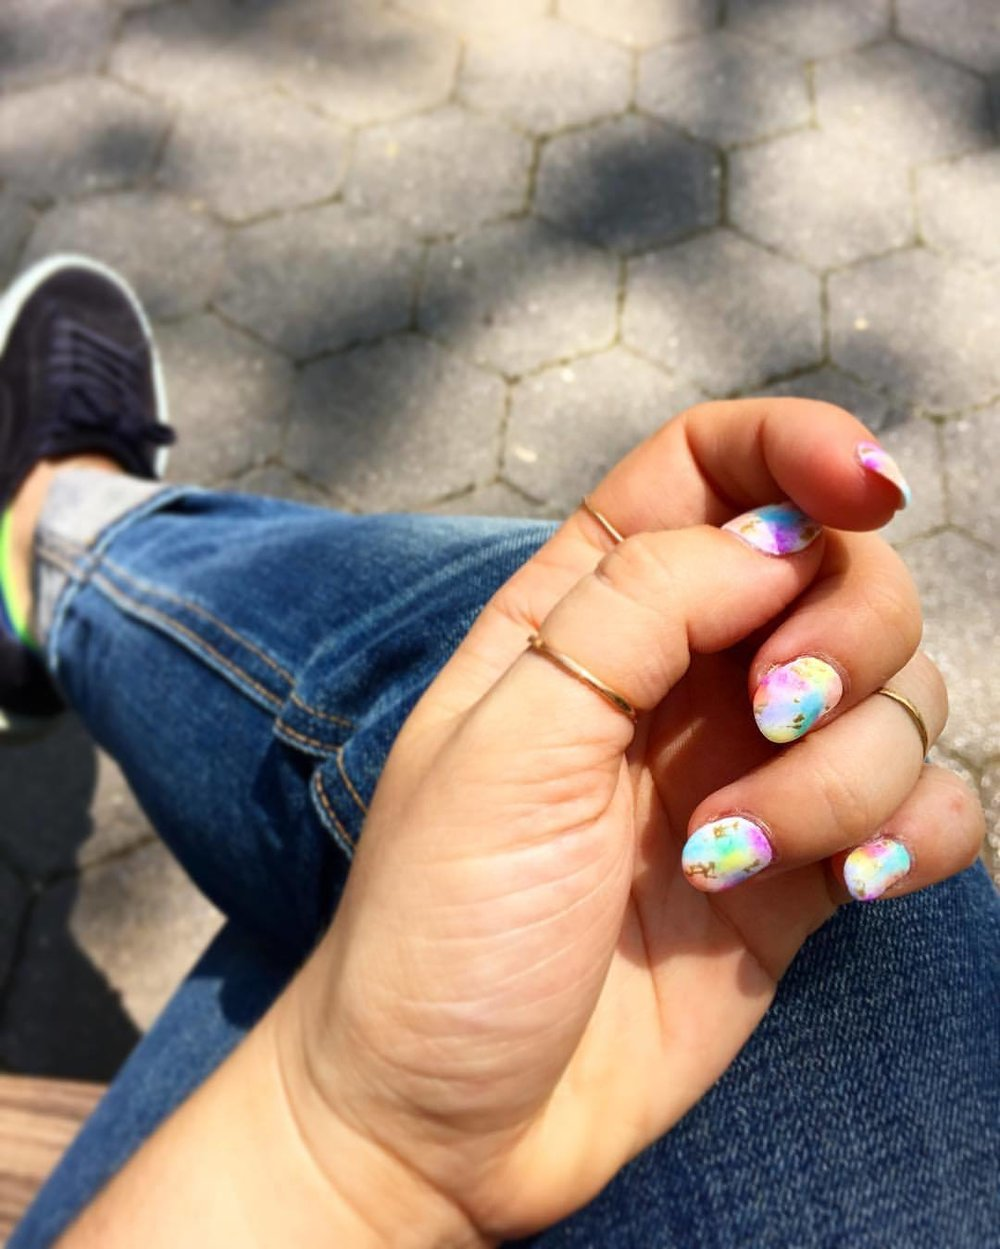 parkin' it with my amazing tie dyed watercolor nails by @ohriginails at @vanityprojects on this gorgeous day. 🙌🏼💕💅🏽  (at Madison Square Park)